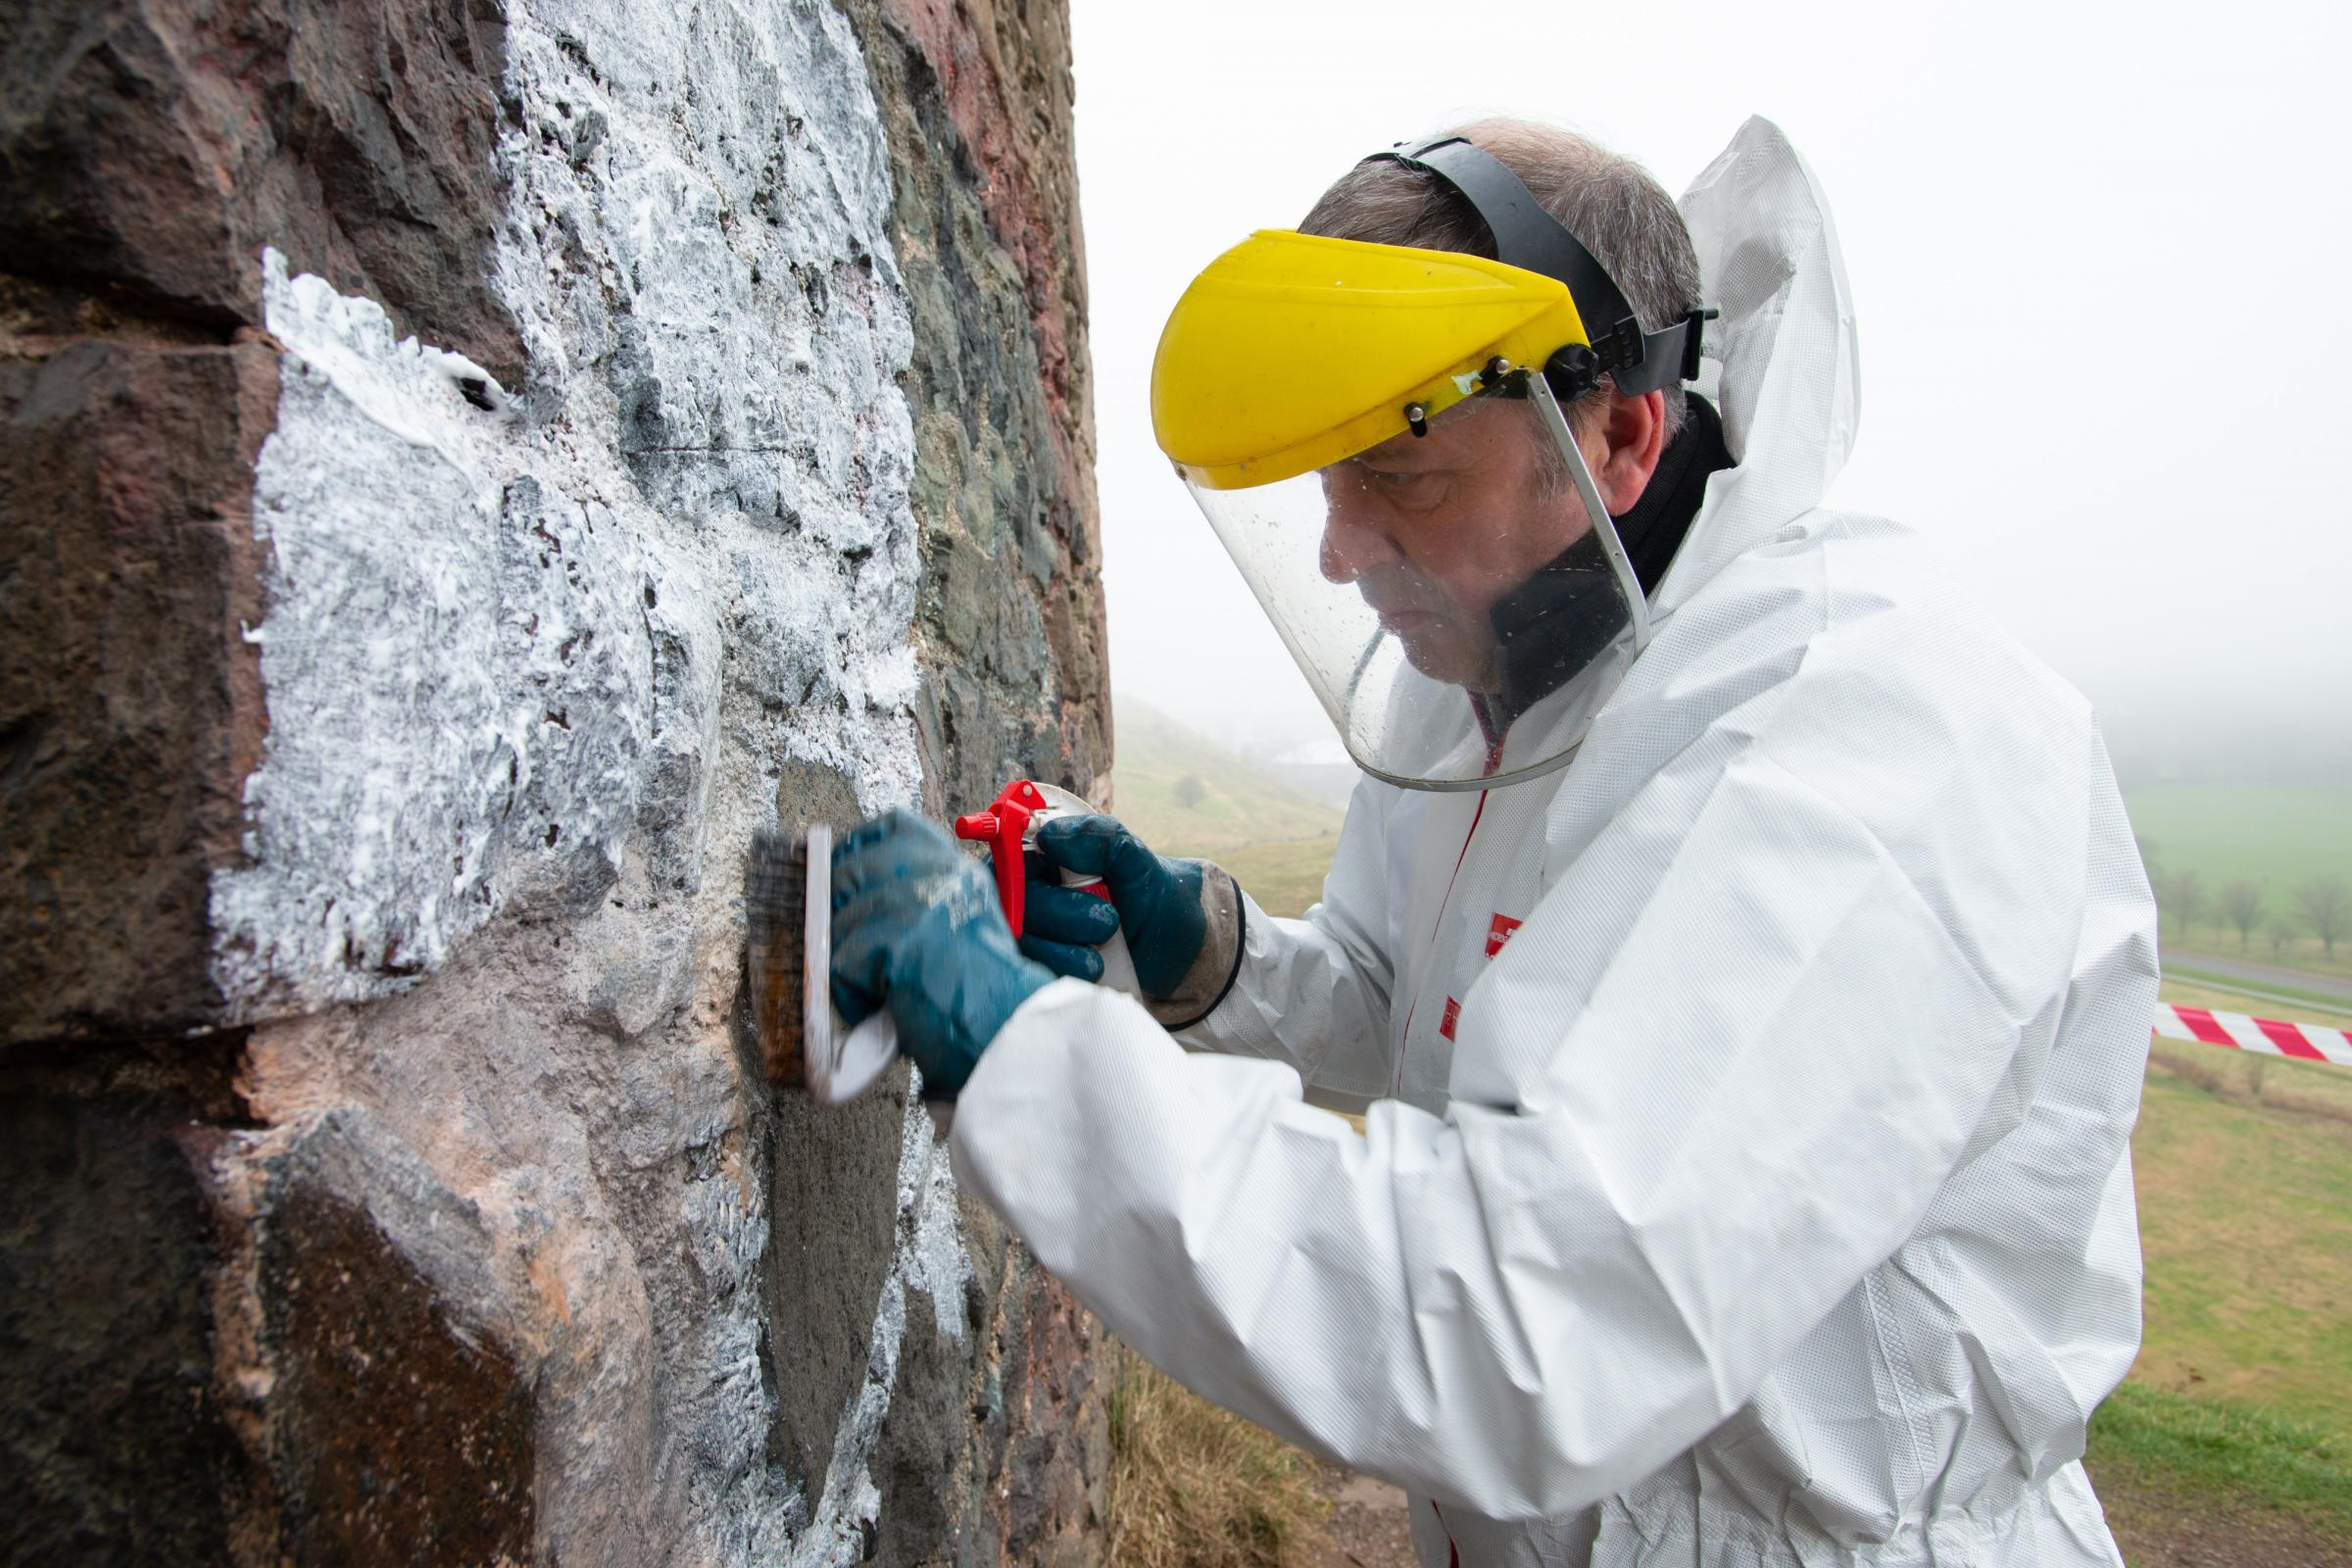 Cleaning graffiti off historic building